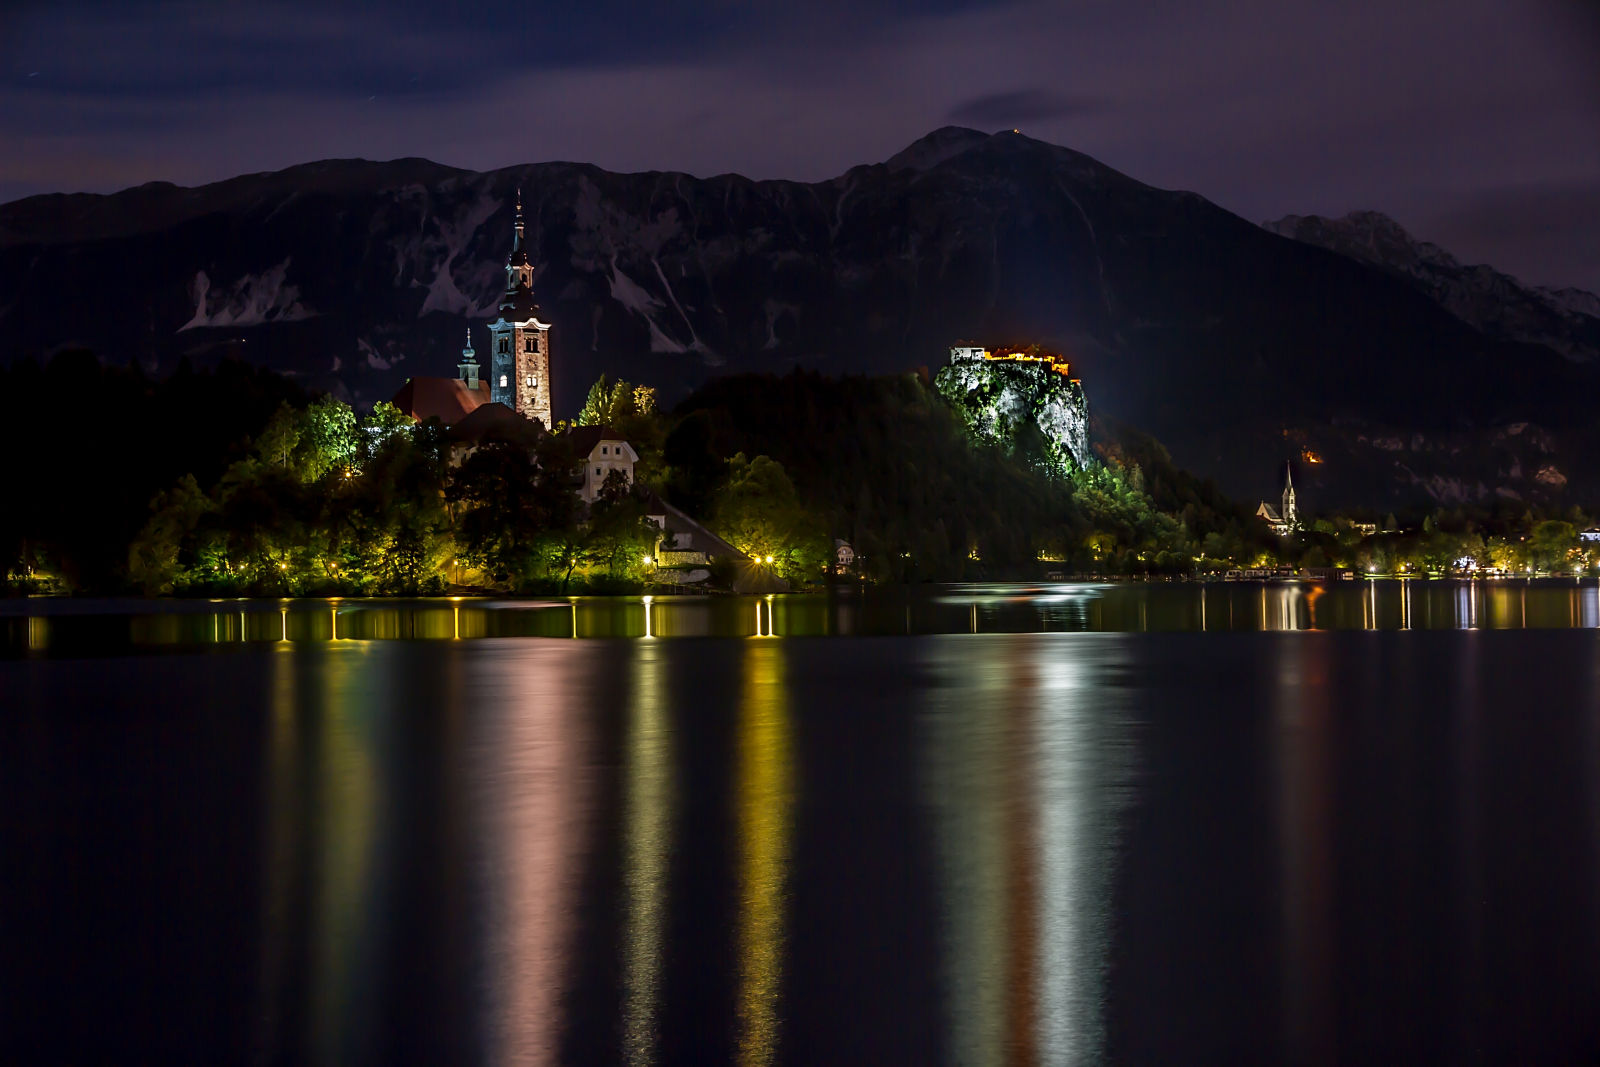 Lake Bled and its island and castle at night